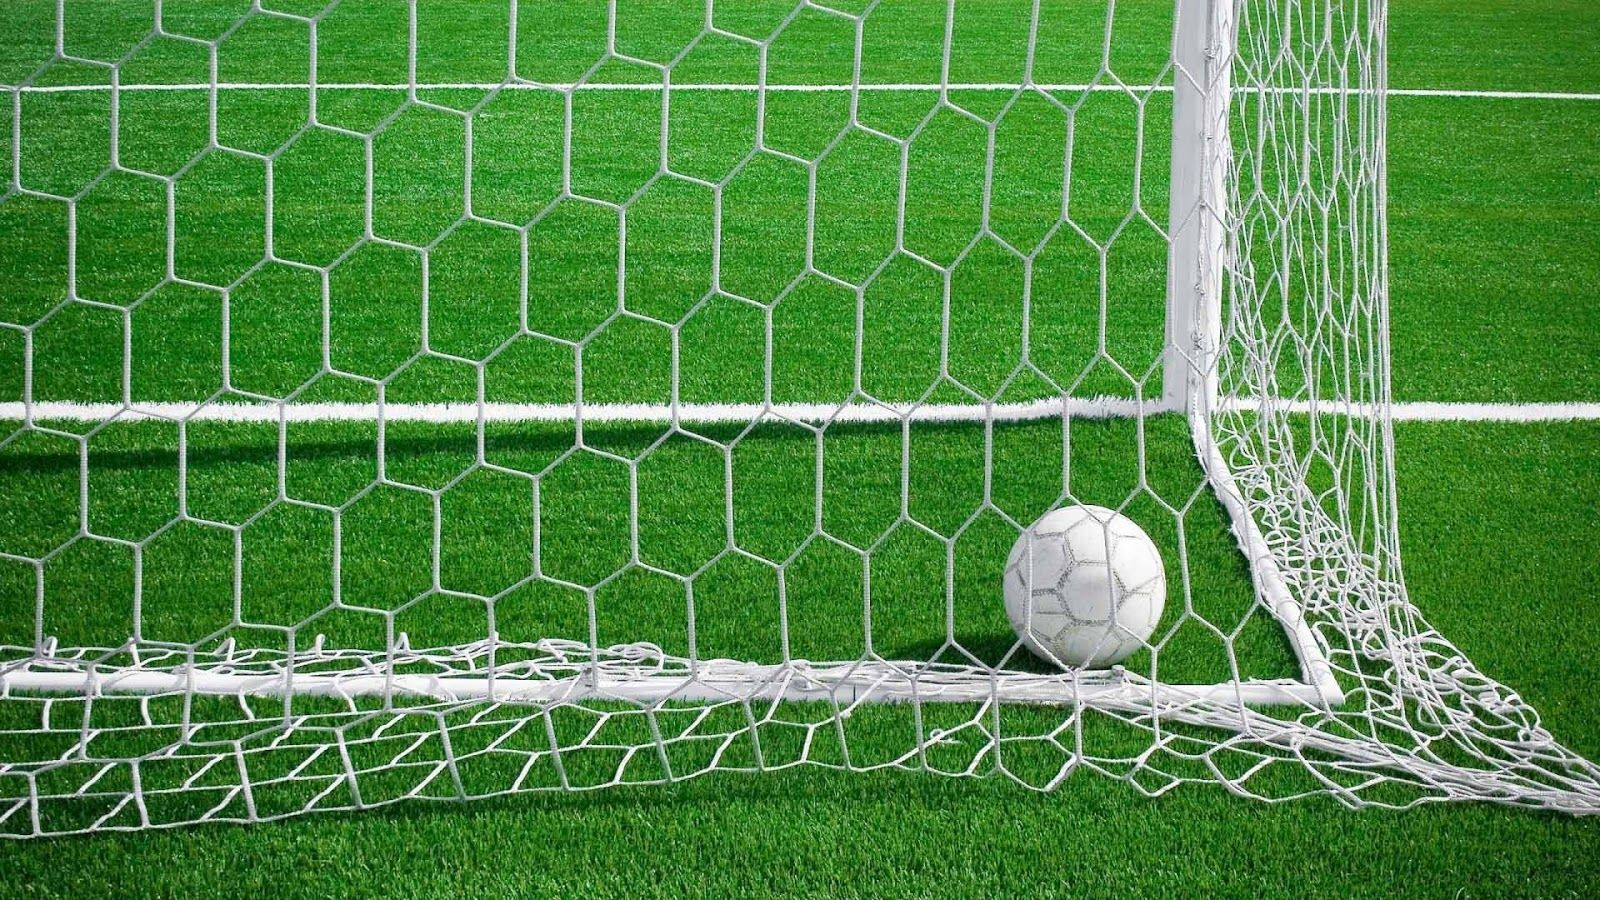 Soccer Goal Wallpaper Hd Resolution V1i Soccer Goal Football Soccer